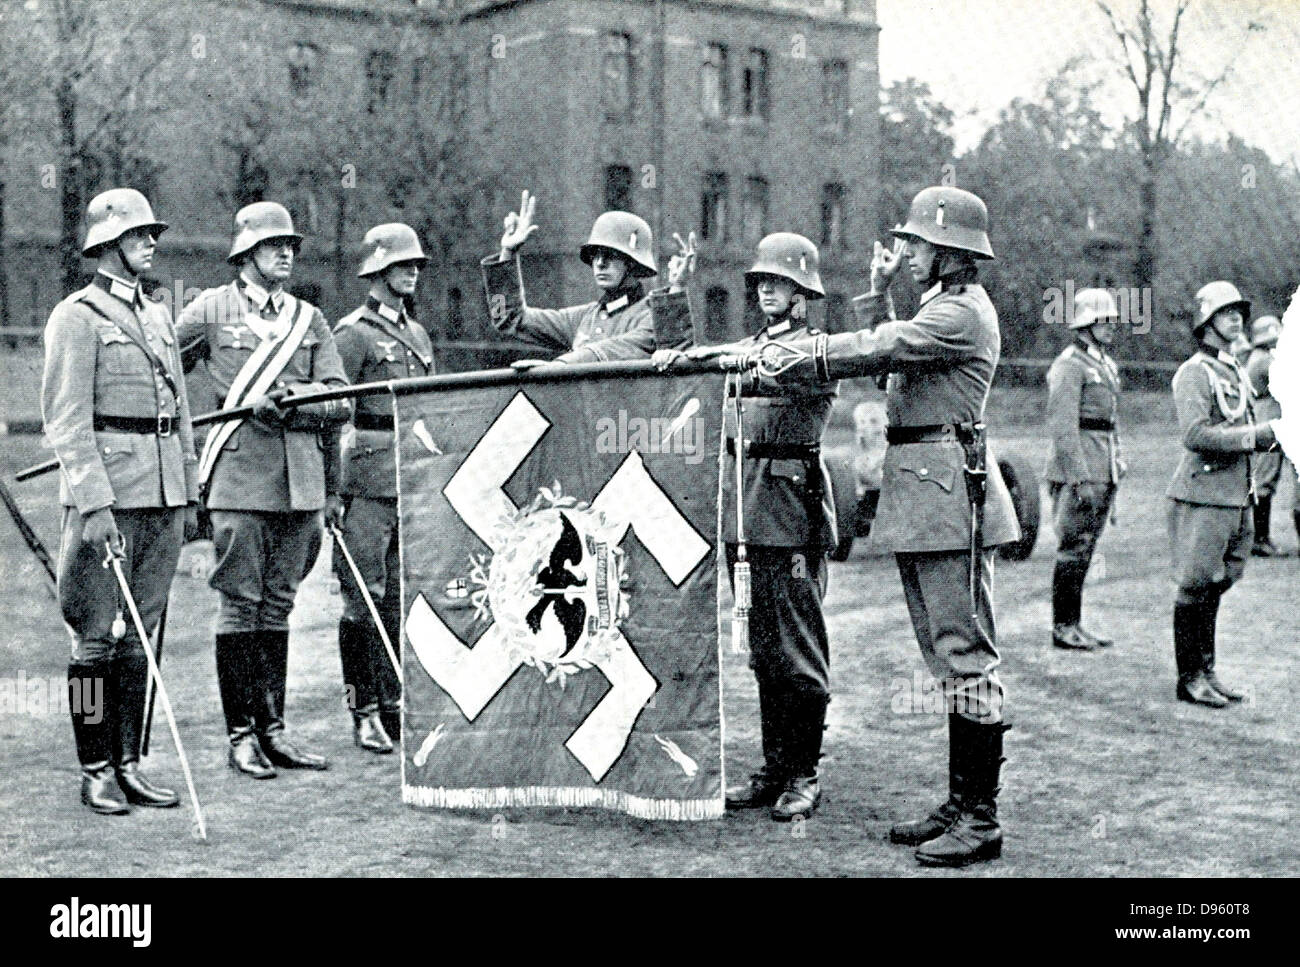 Image result for Nazi army Photo